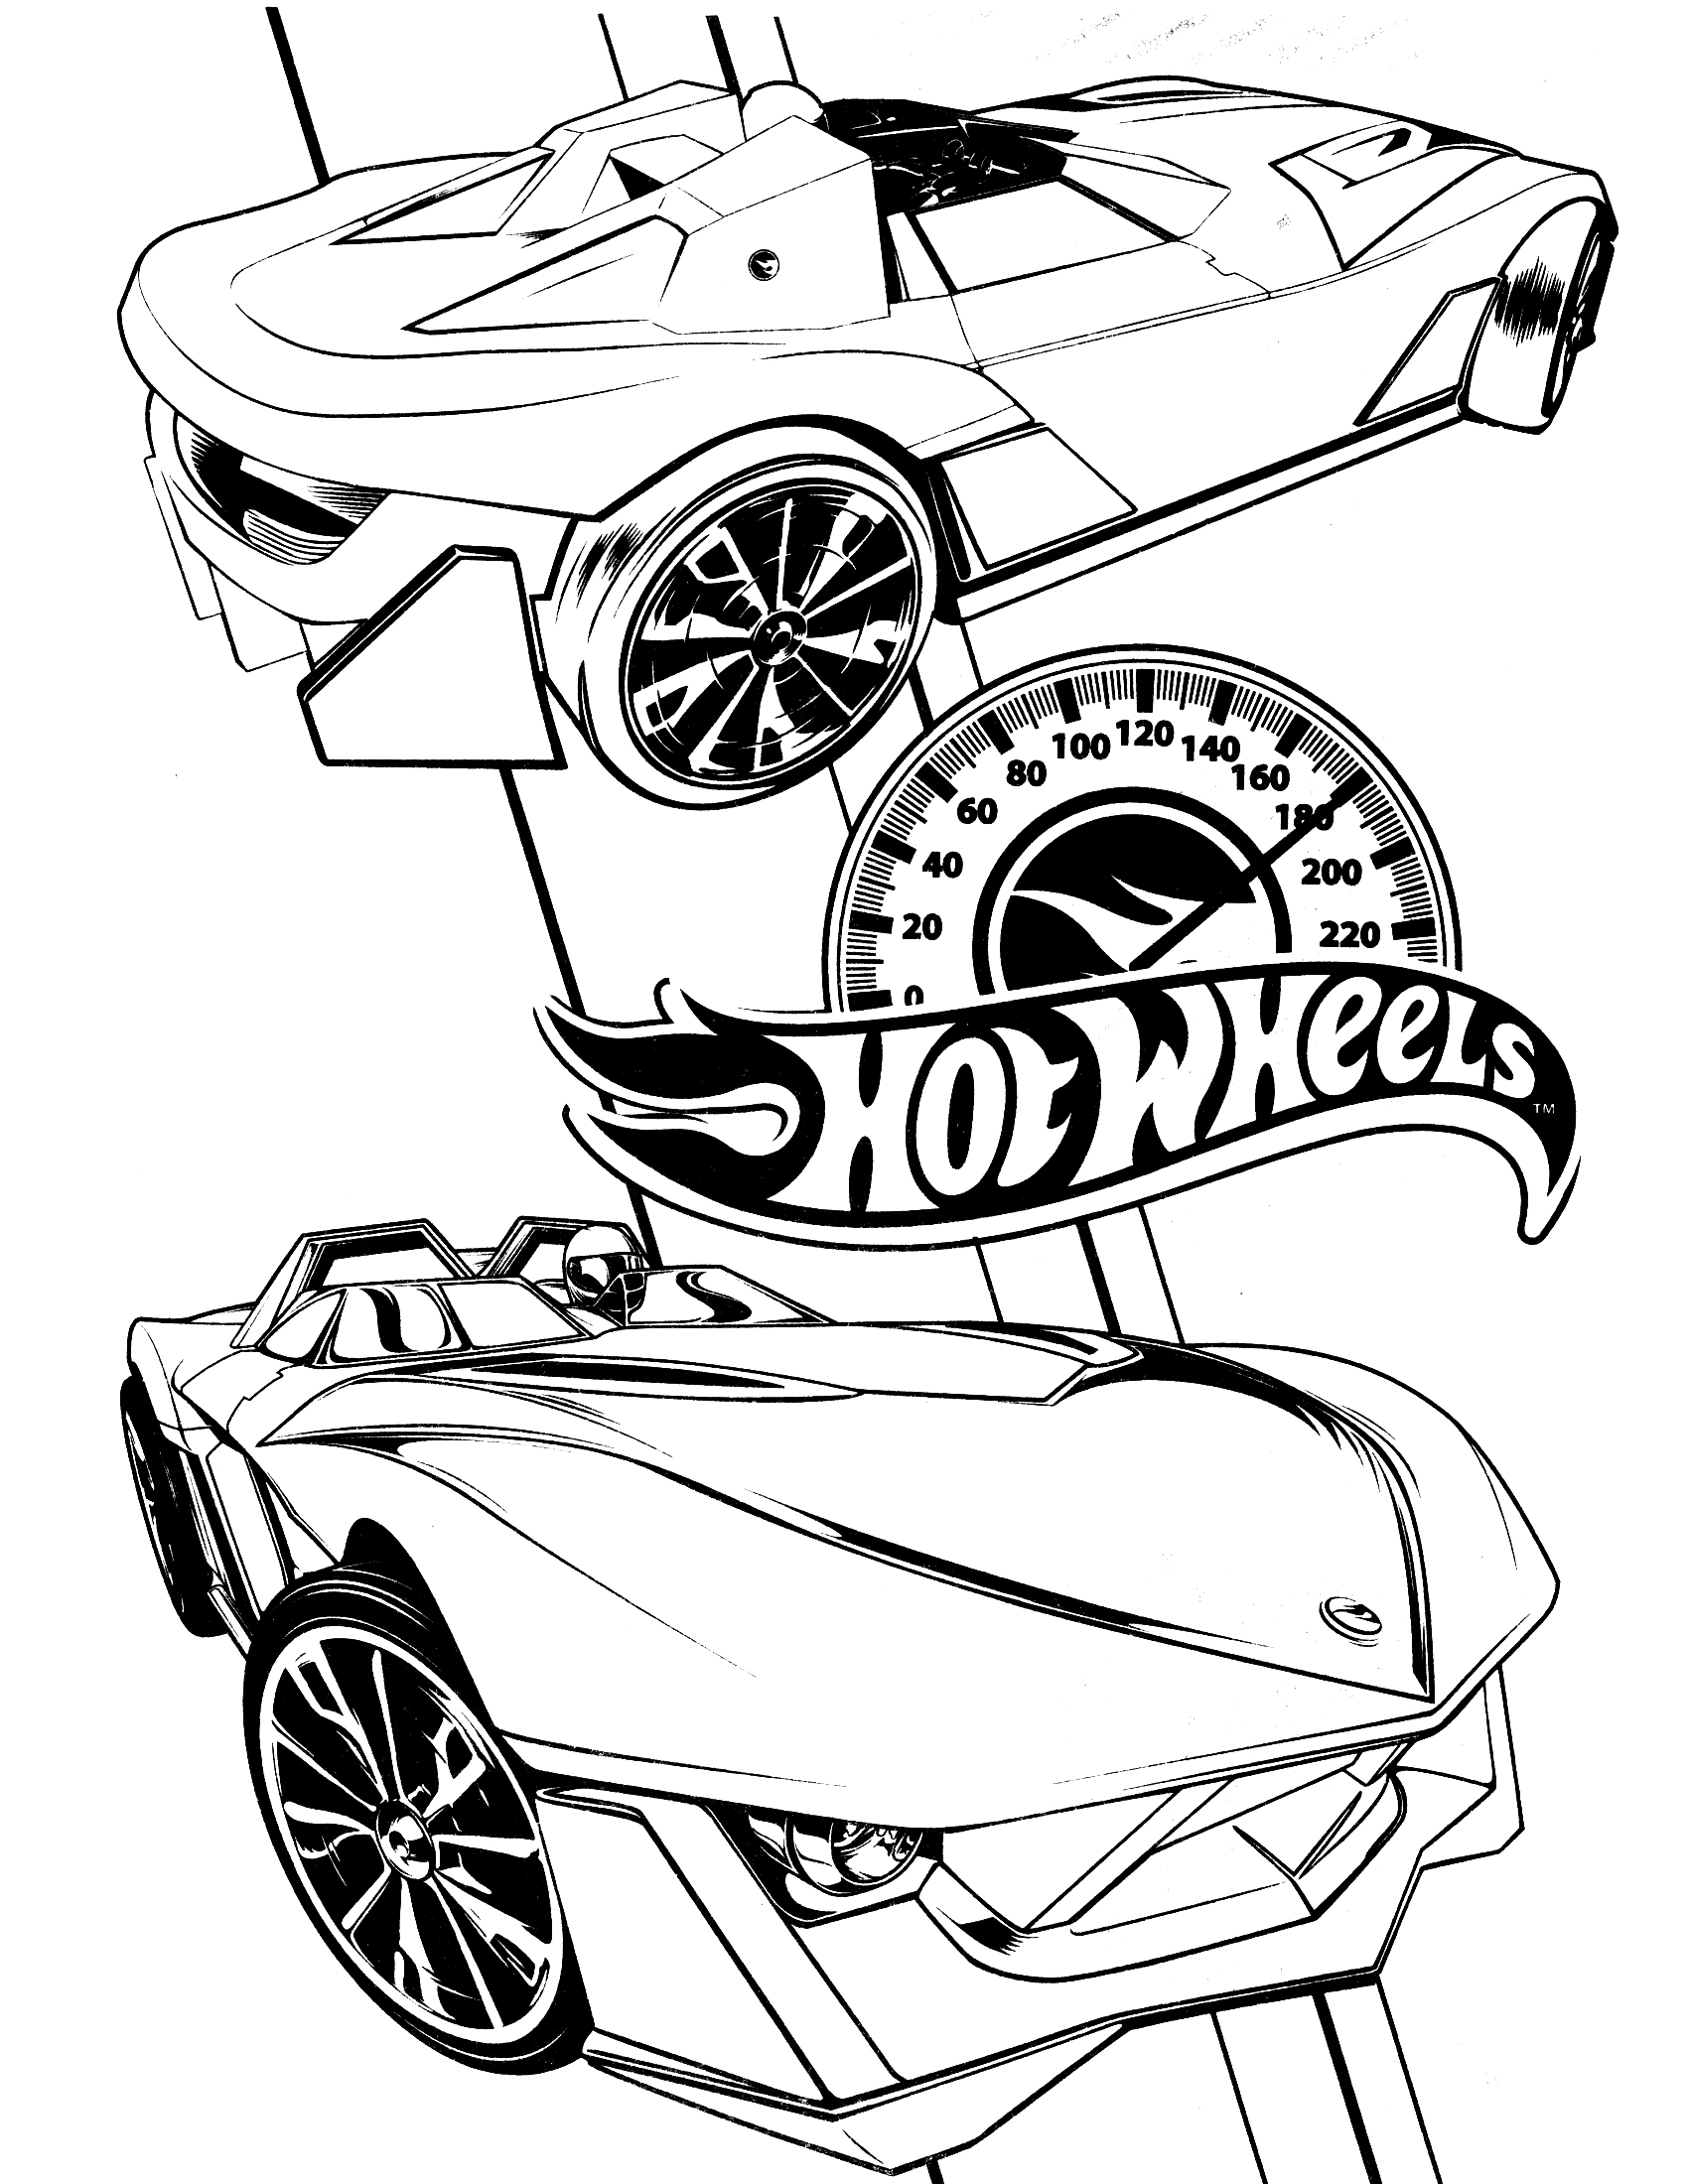 hot wheels images to print free printable hot wheels coloring pages for kids print images wheels hot to